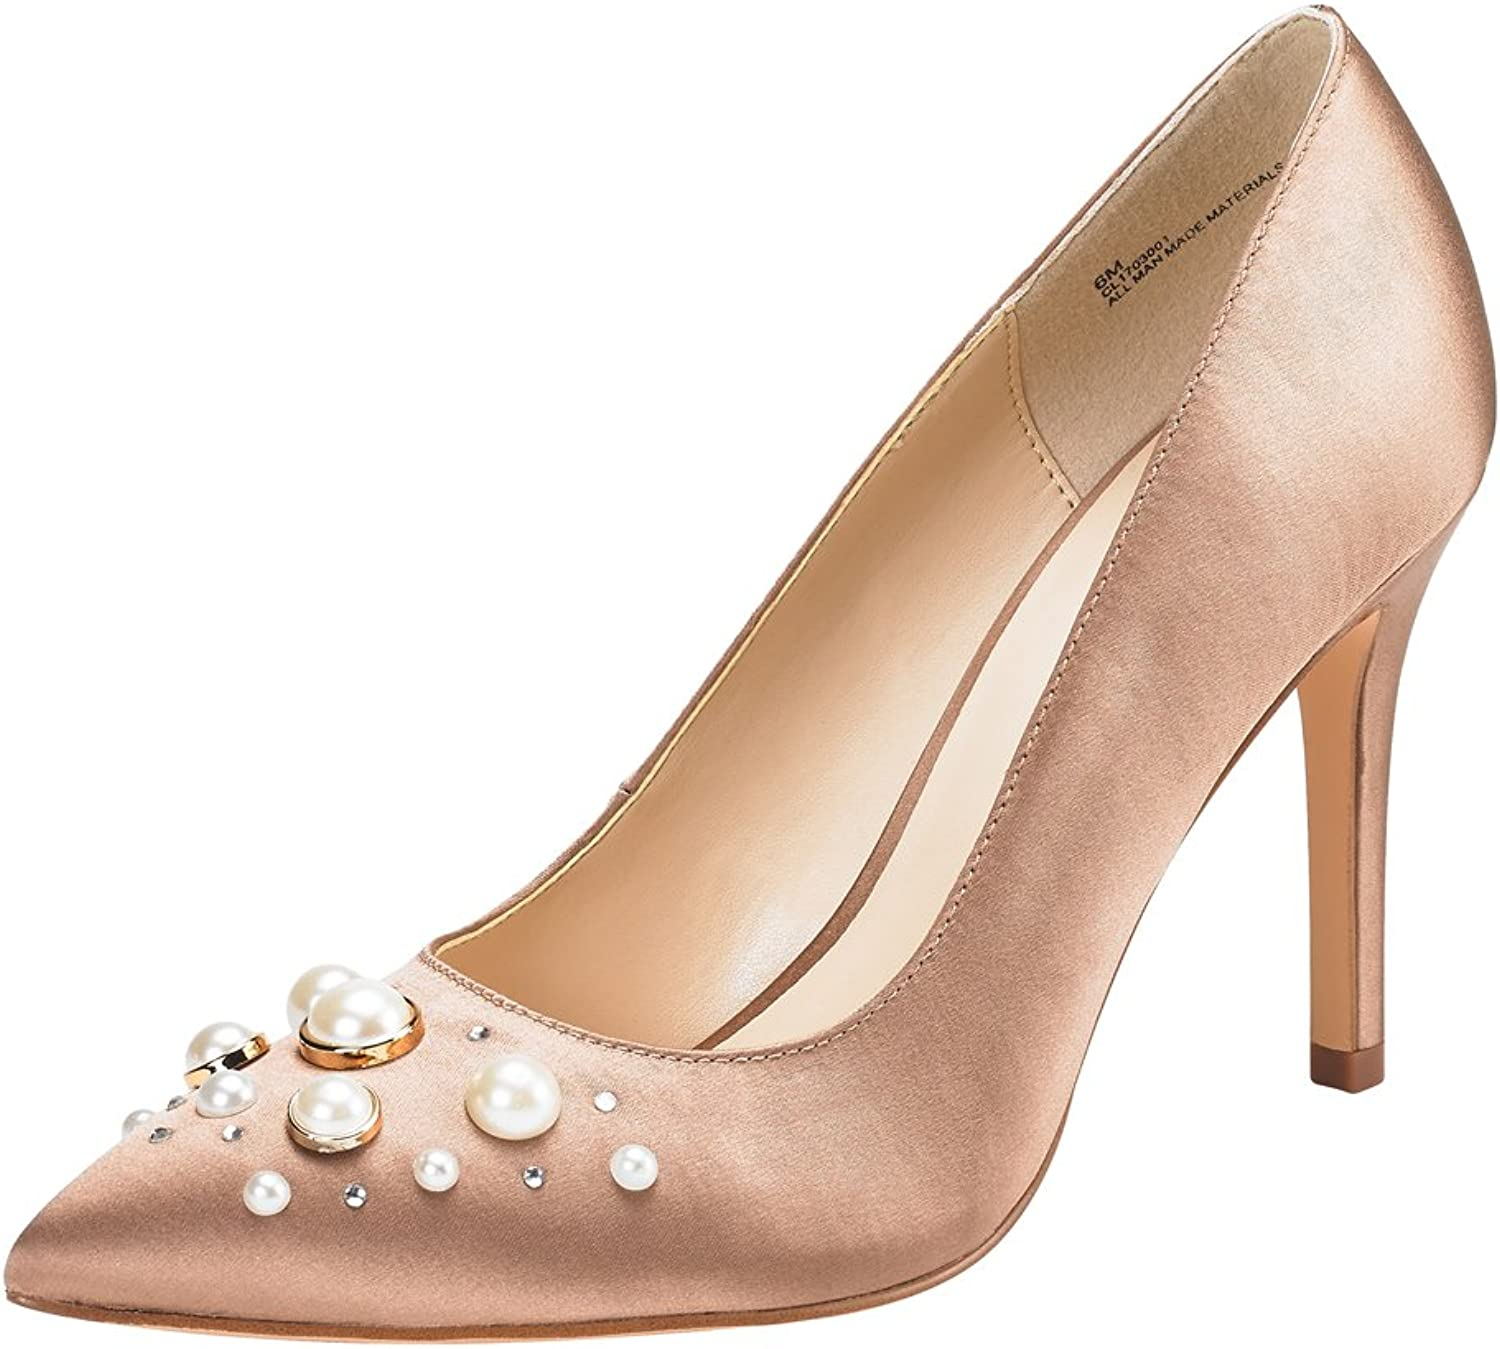 JENN ARDOR Stiletto High Heel shoes for Women  Pointed, Closed Toe Classic Slip On Pearl Dress Pumps